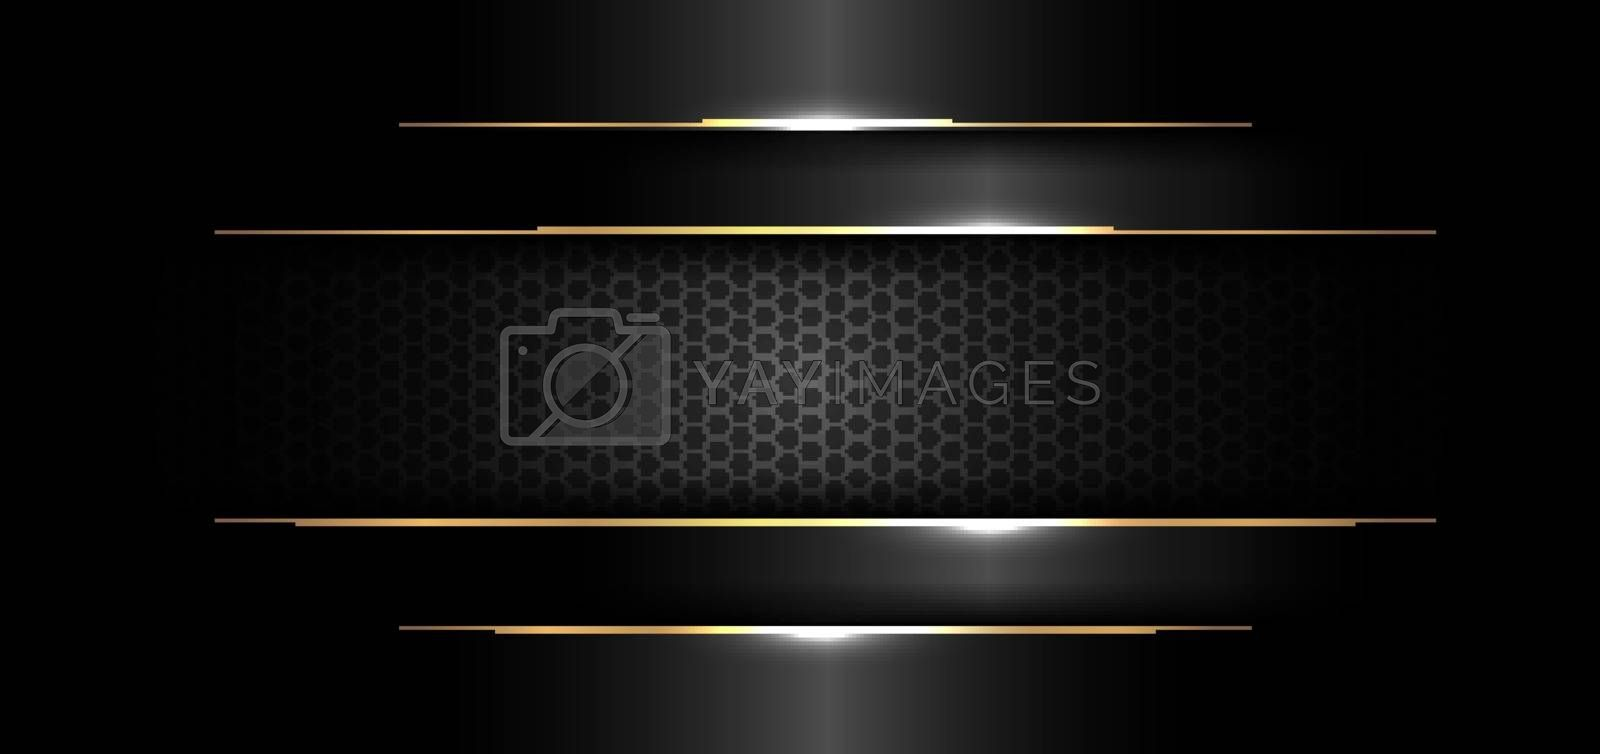 Abstract banner design template black glossy with gold line and lighting effect on dark background and texture. Luxury style. Vector illustration